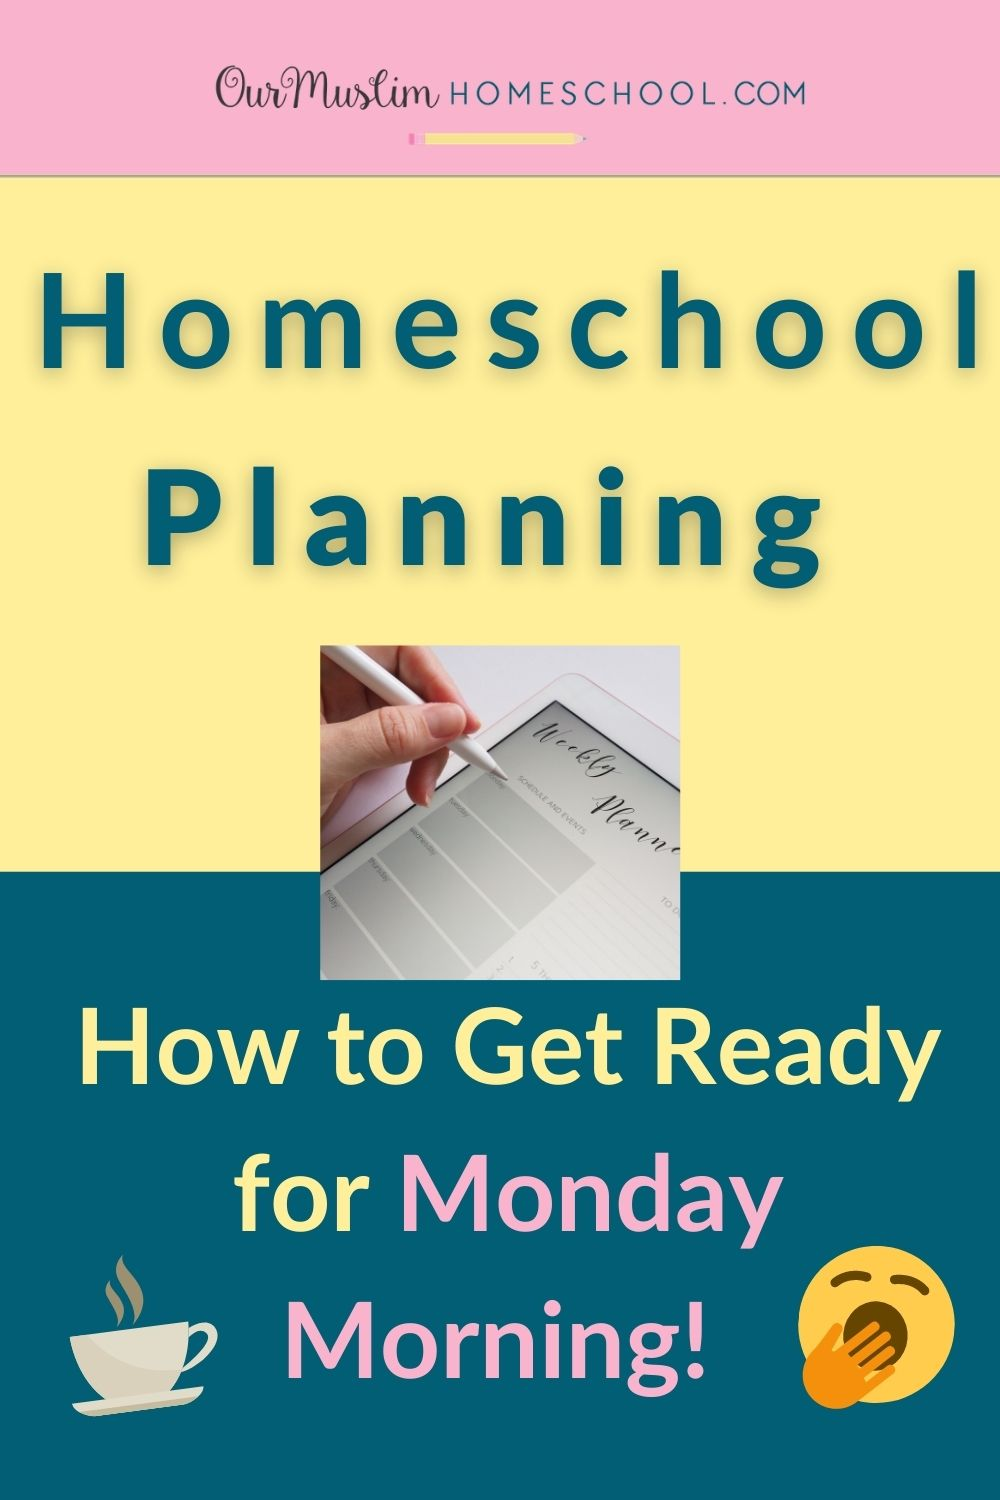 Homeschool Planning: How to Get Ready for Monday morning!